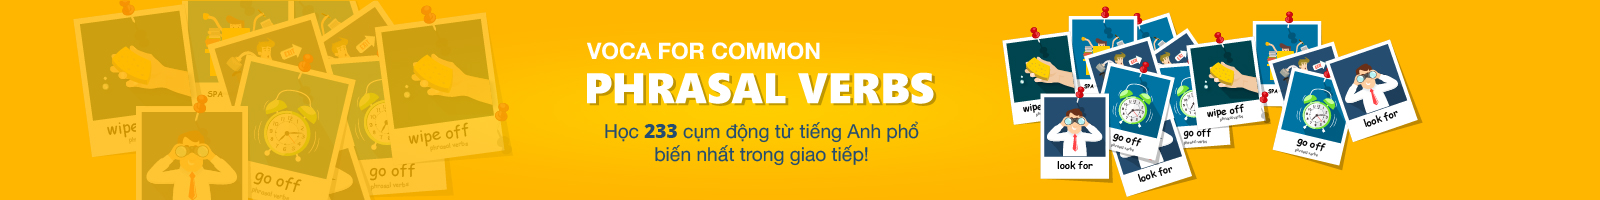 VOCA for Common Phrasal Verbs